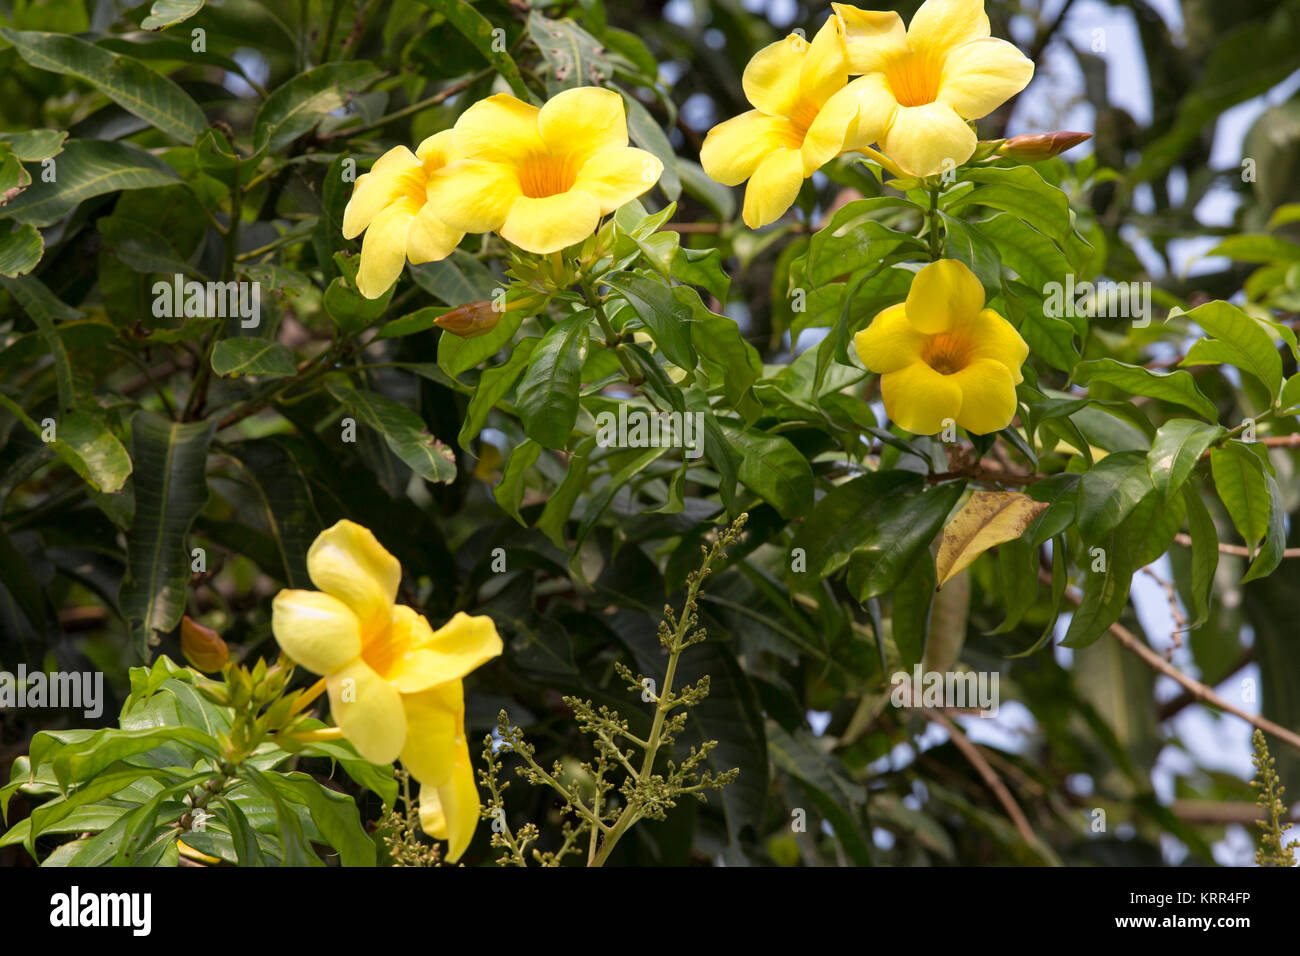 Jasmine flowers raindrops stock photos jasmine flowers raindrops yellow flowers with green plant background stock image izmirmasajfo